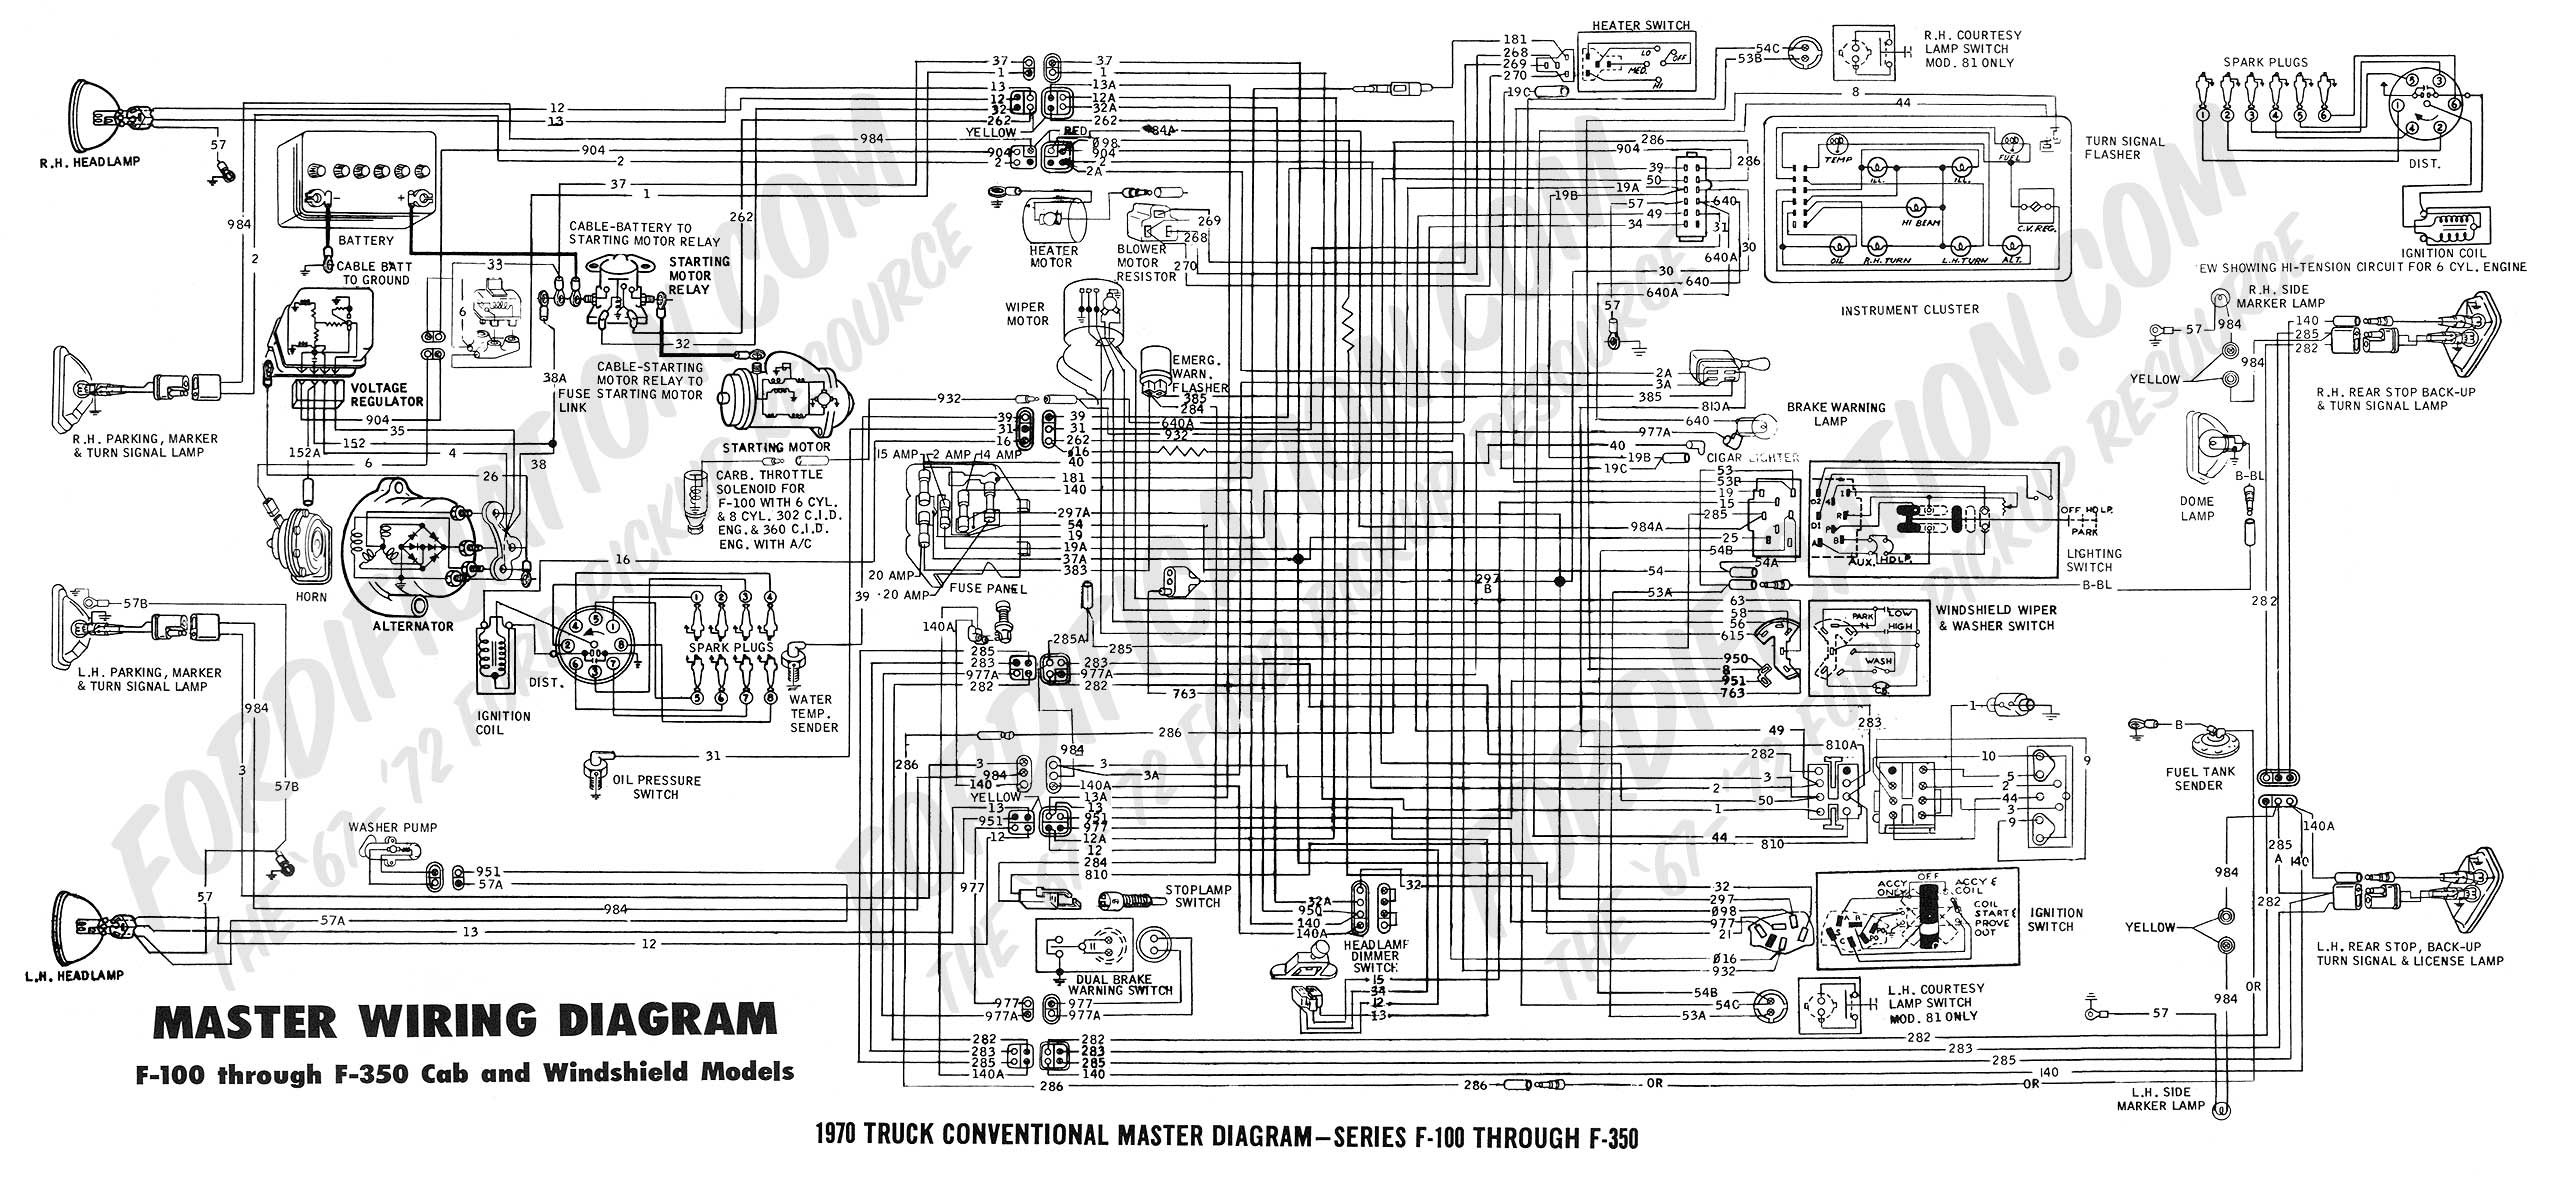 2003 F350 Wiring Diagram Automotive 2006 Ford Escape Harness 7 Pin Library Rh 48 Muehlwald De